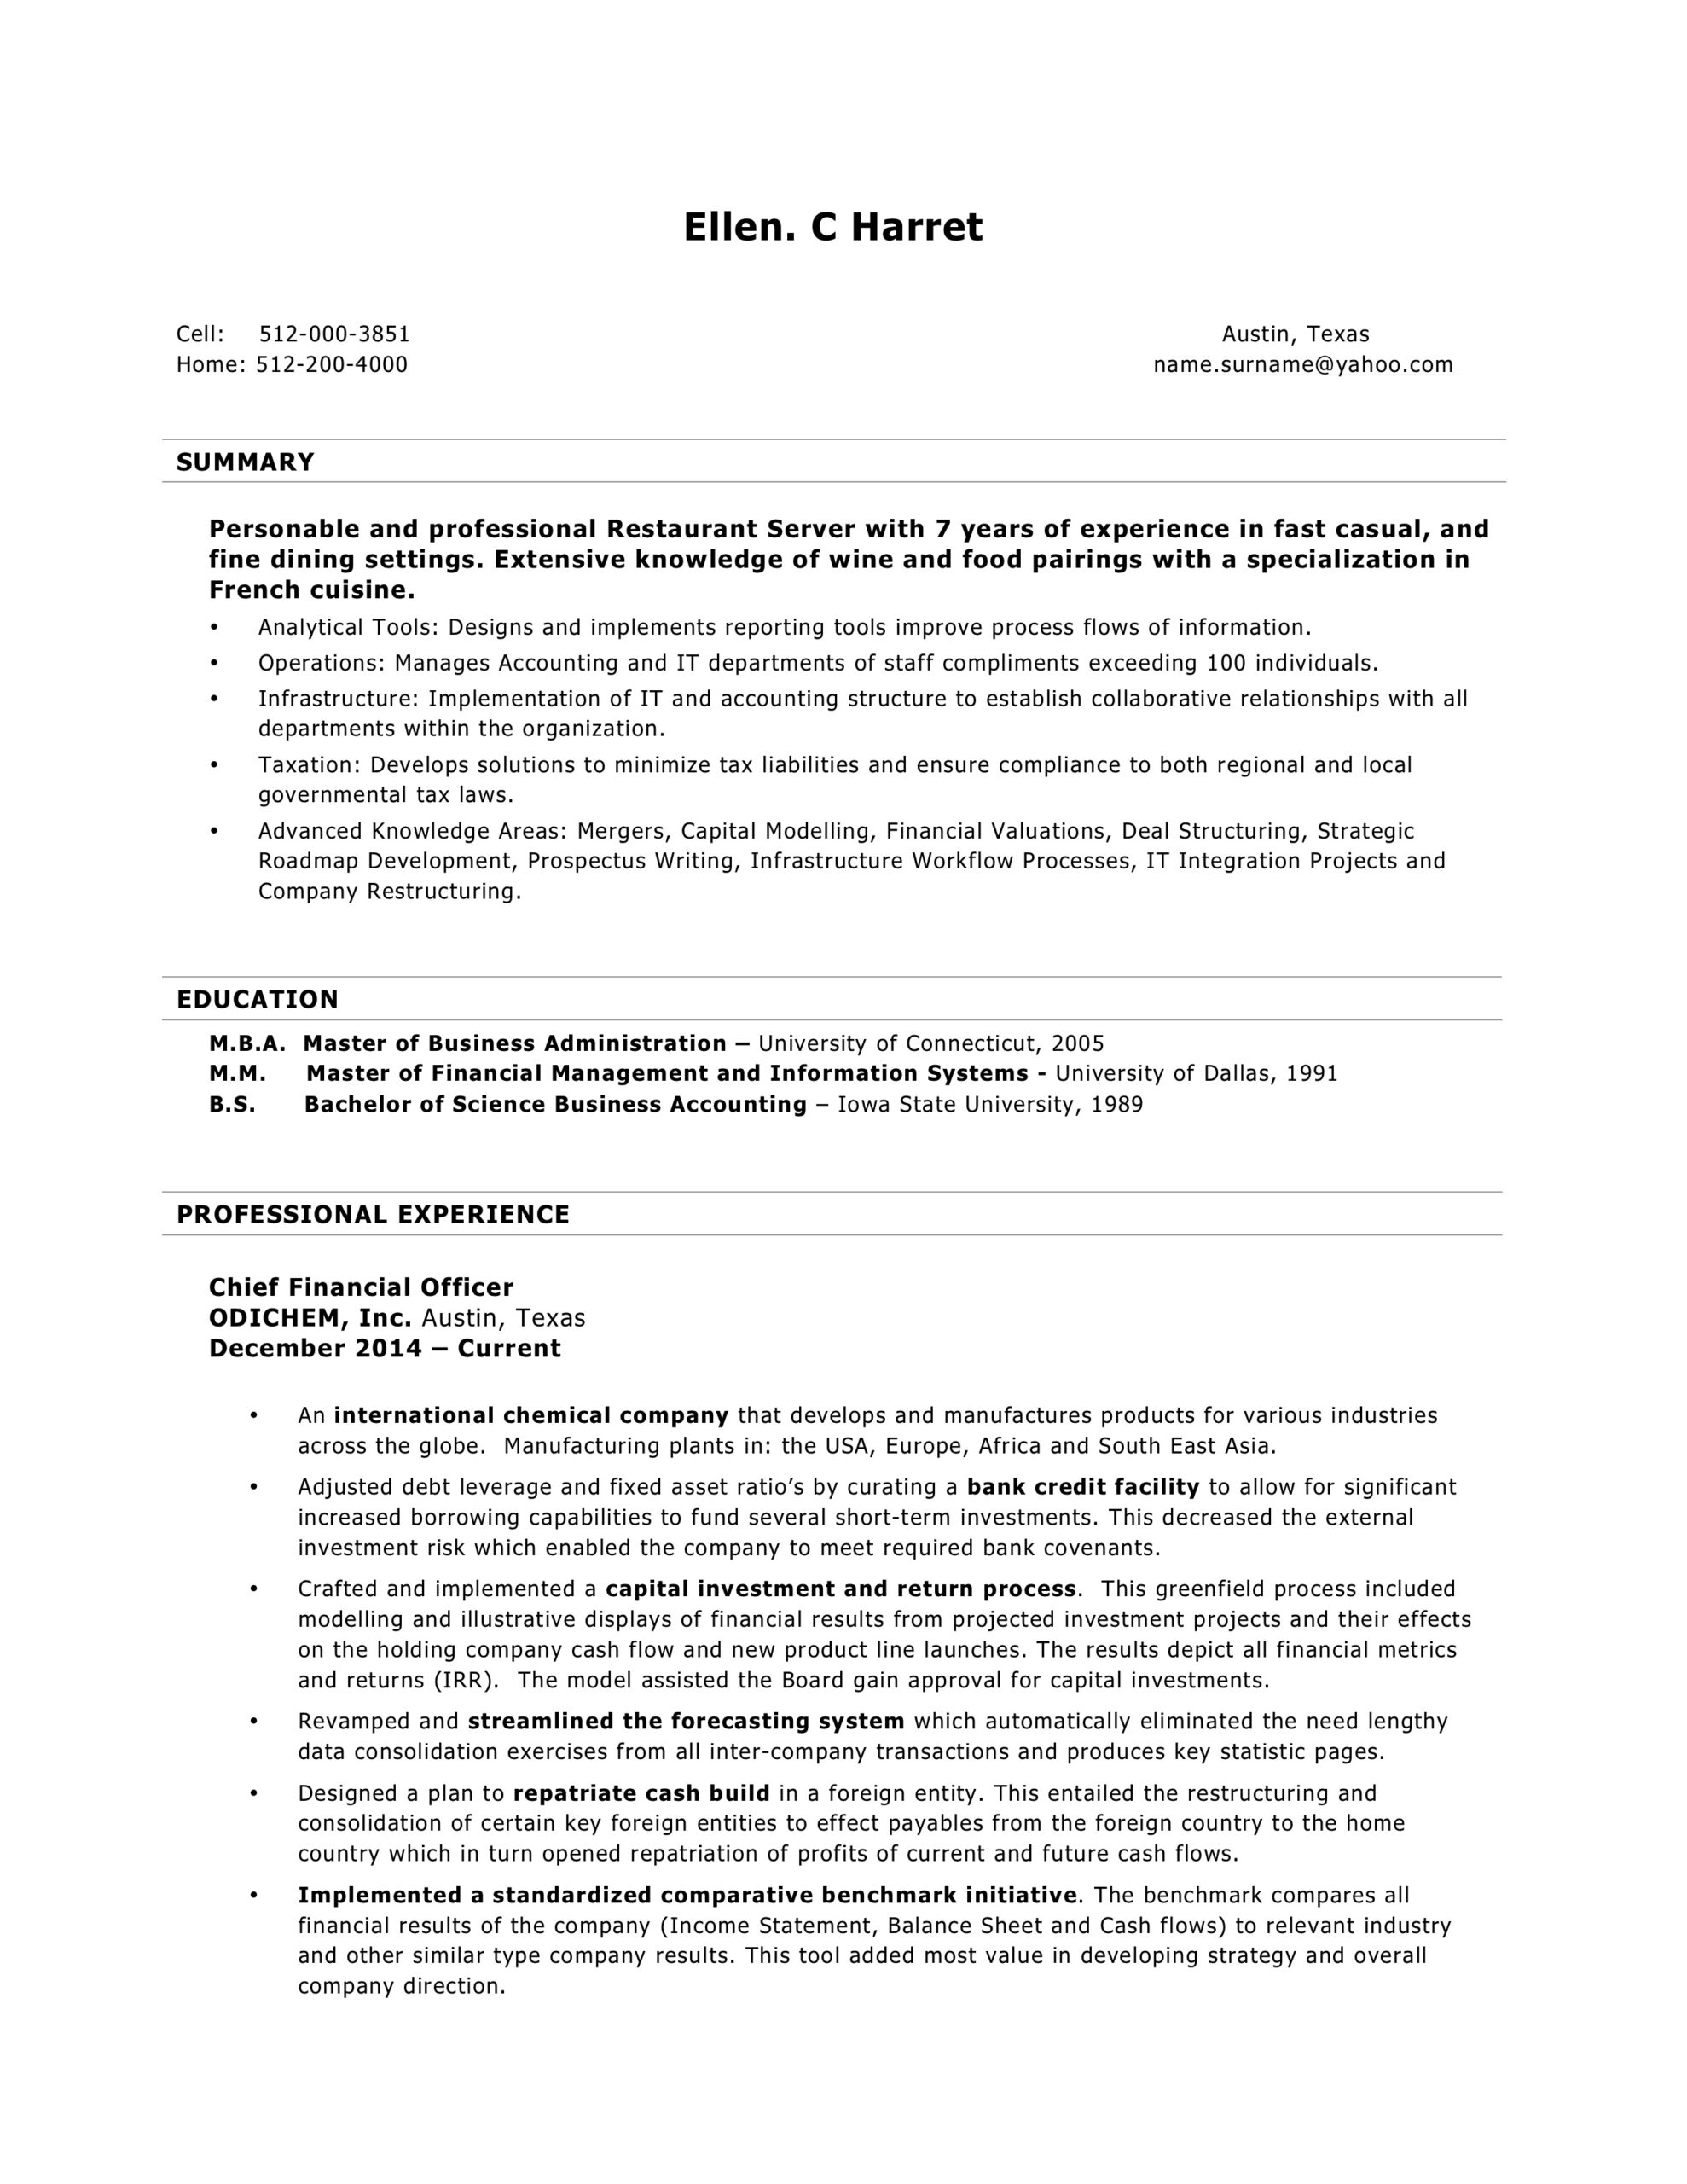 free word resume templates in ms functional template server electrician pediatrician Resume Functional Resume Template Word 2003